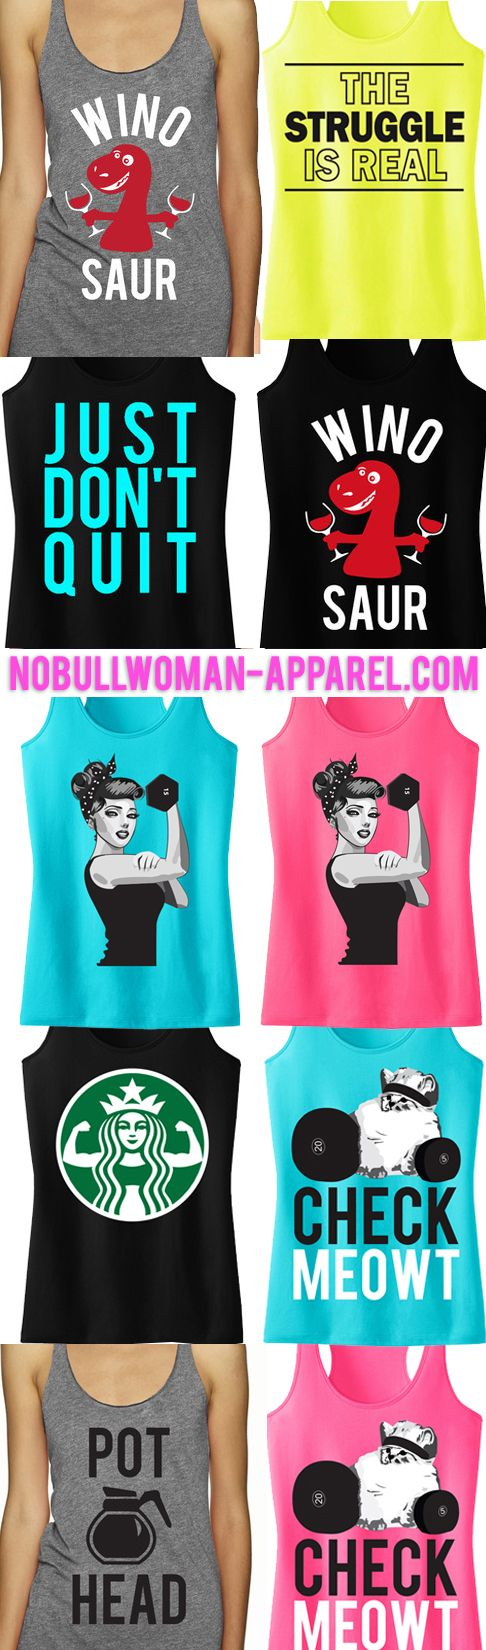 Get Geared up for #Summer! PICK ANY 3 #Workout Tank Tops for only $59.95 including shipping!! Tons to choose from, click here to buy http://nobullwoman-apparel.com/collections/sale-special-deals/products/3-workout-fitness-tank-tops-15-off-bundle-workout